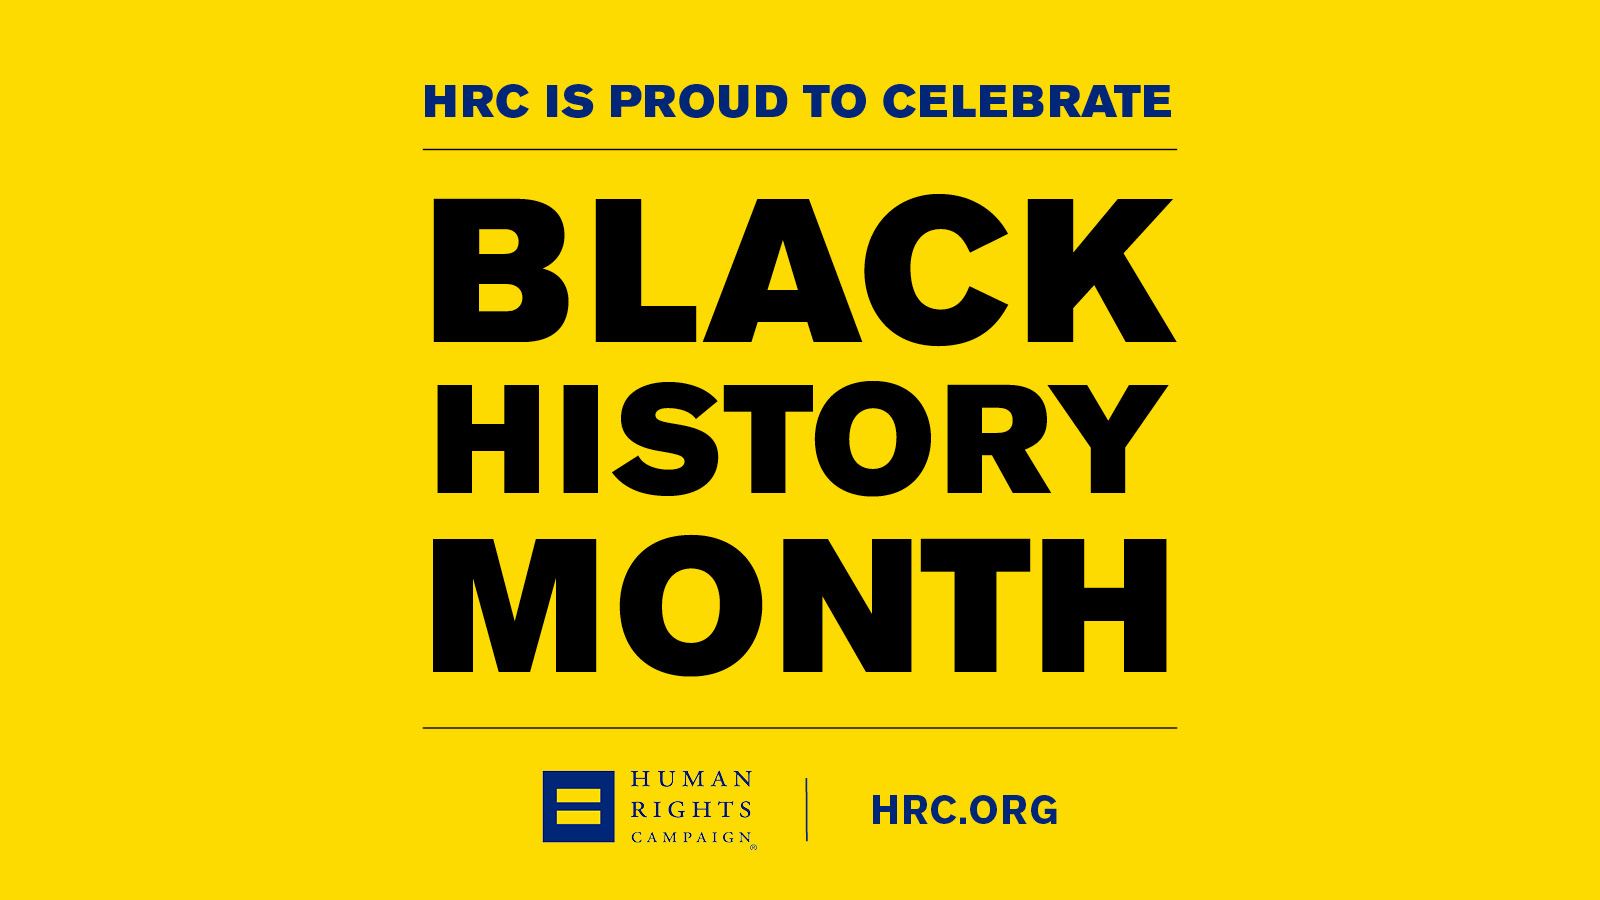 HRC Marks Black History Month and Celebrates Black LGBTQ Leaders